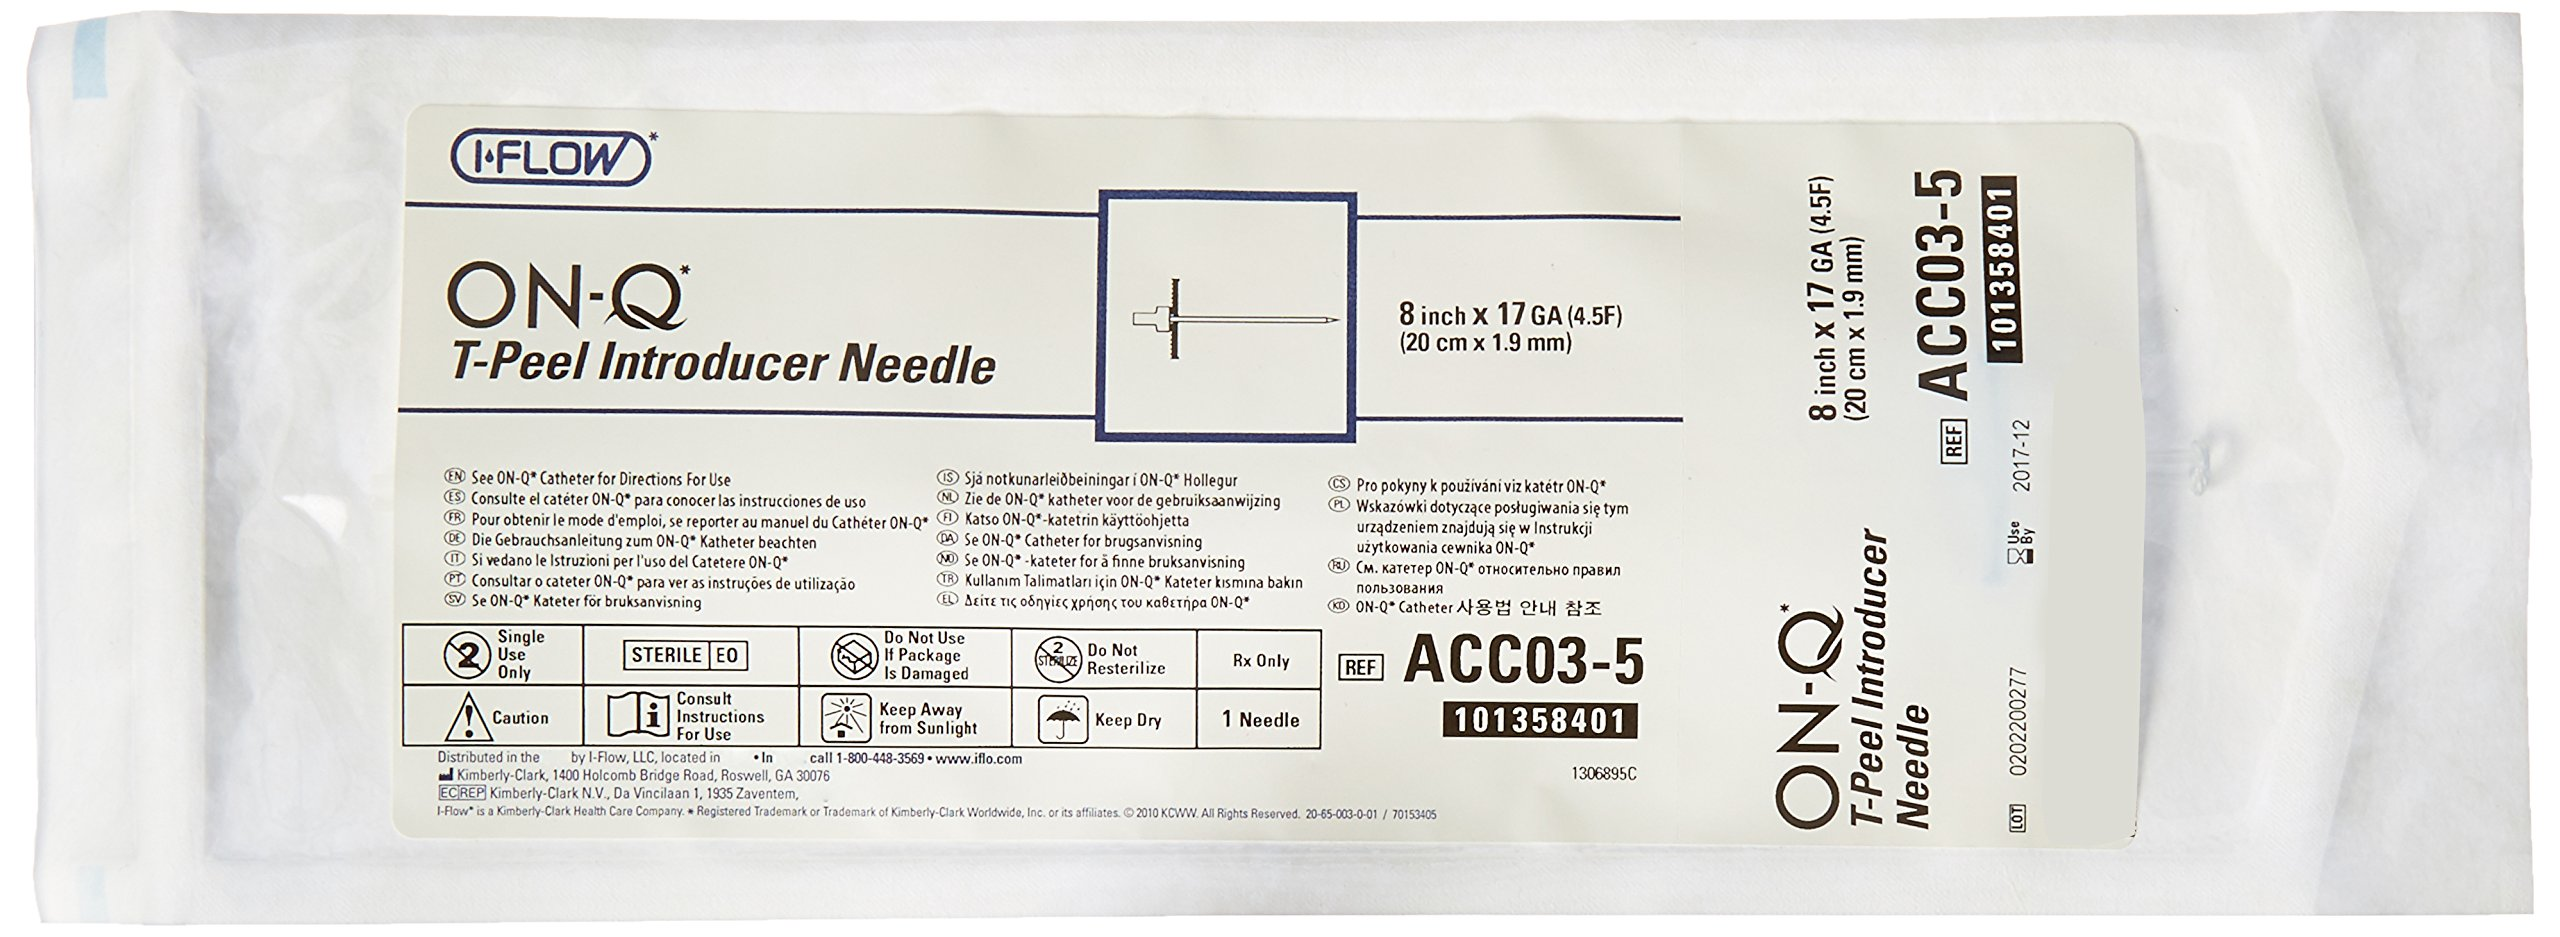 Halyard Health ACC03-5 ON-Q Introducer Needles, 8'' Length (Pack of 5)